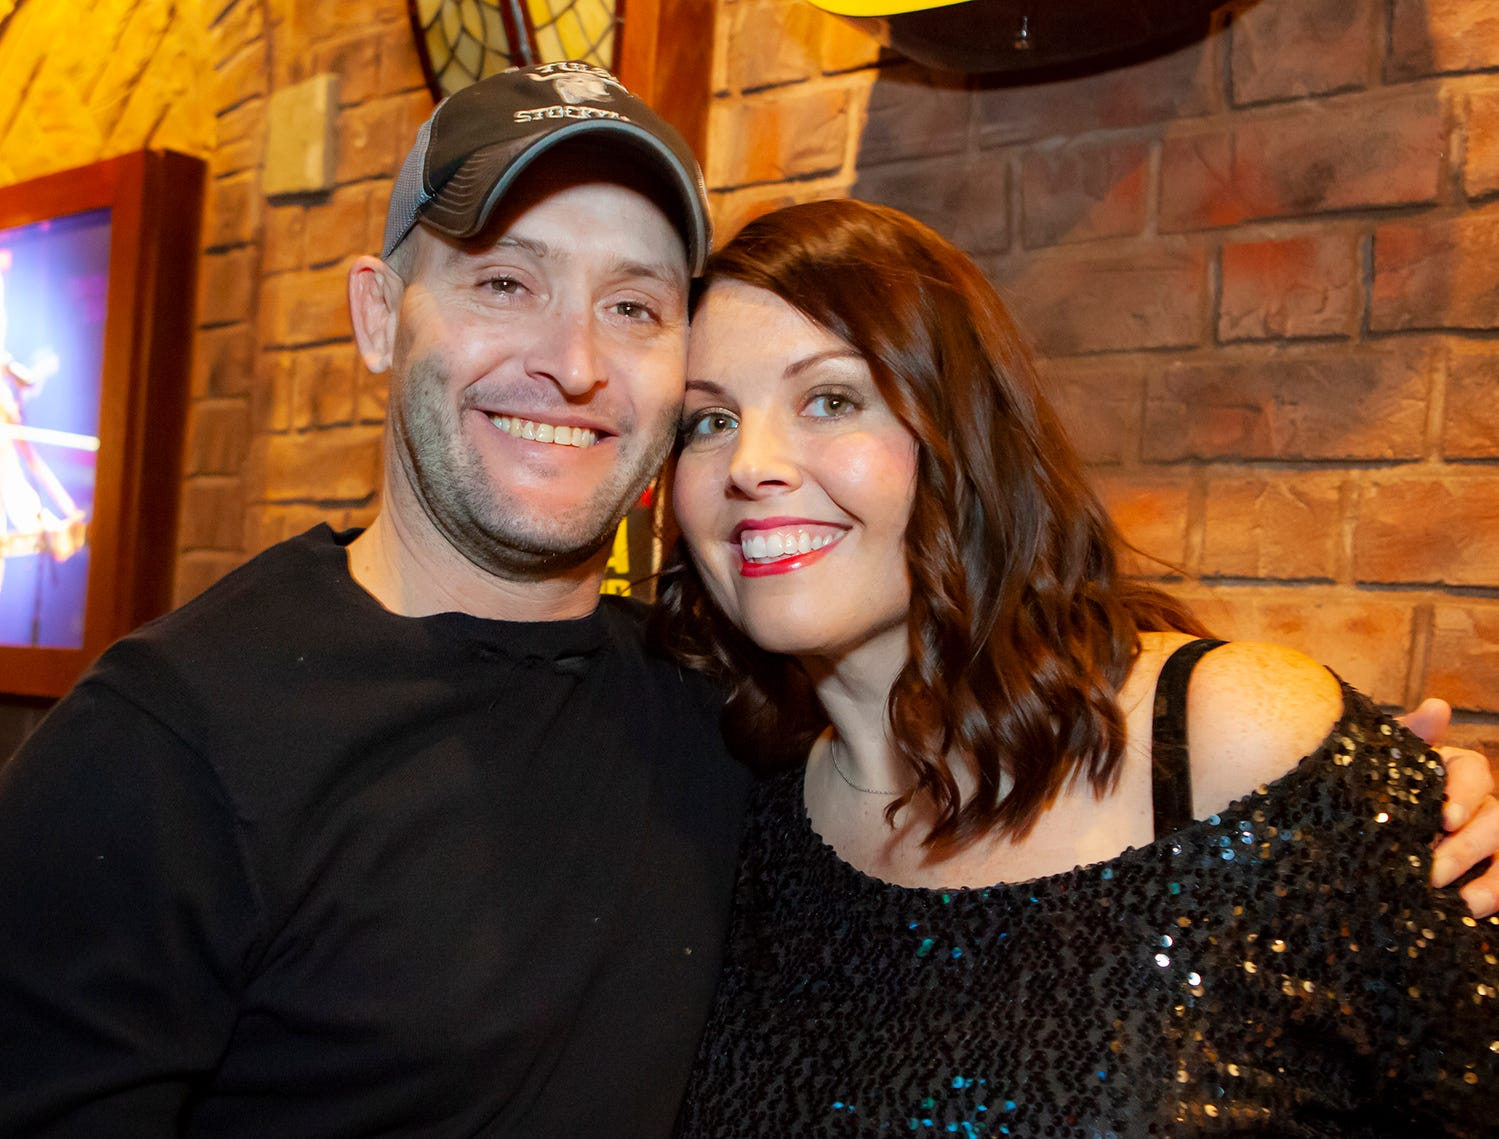 Riley Grinnell and Jennifer Smotherman at the New Year's party at Hank's Honky Tonk in Murfreesboro.